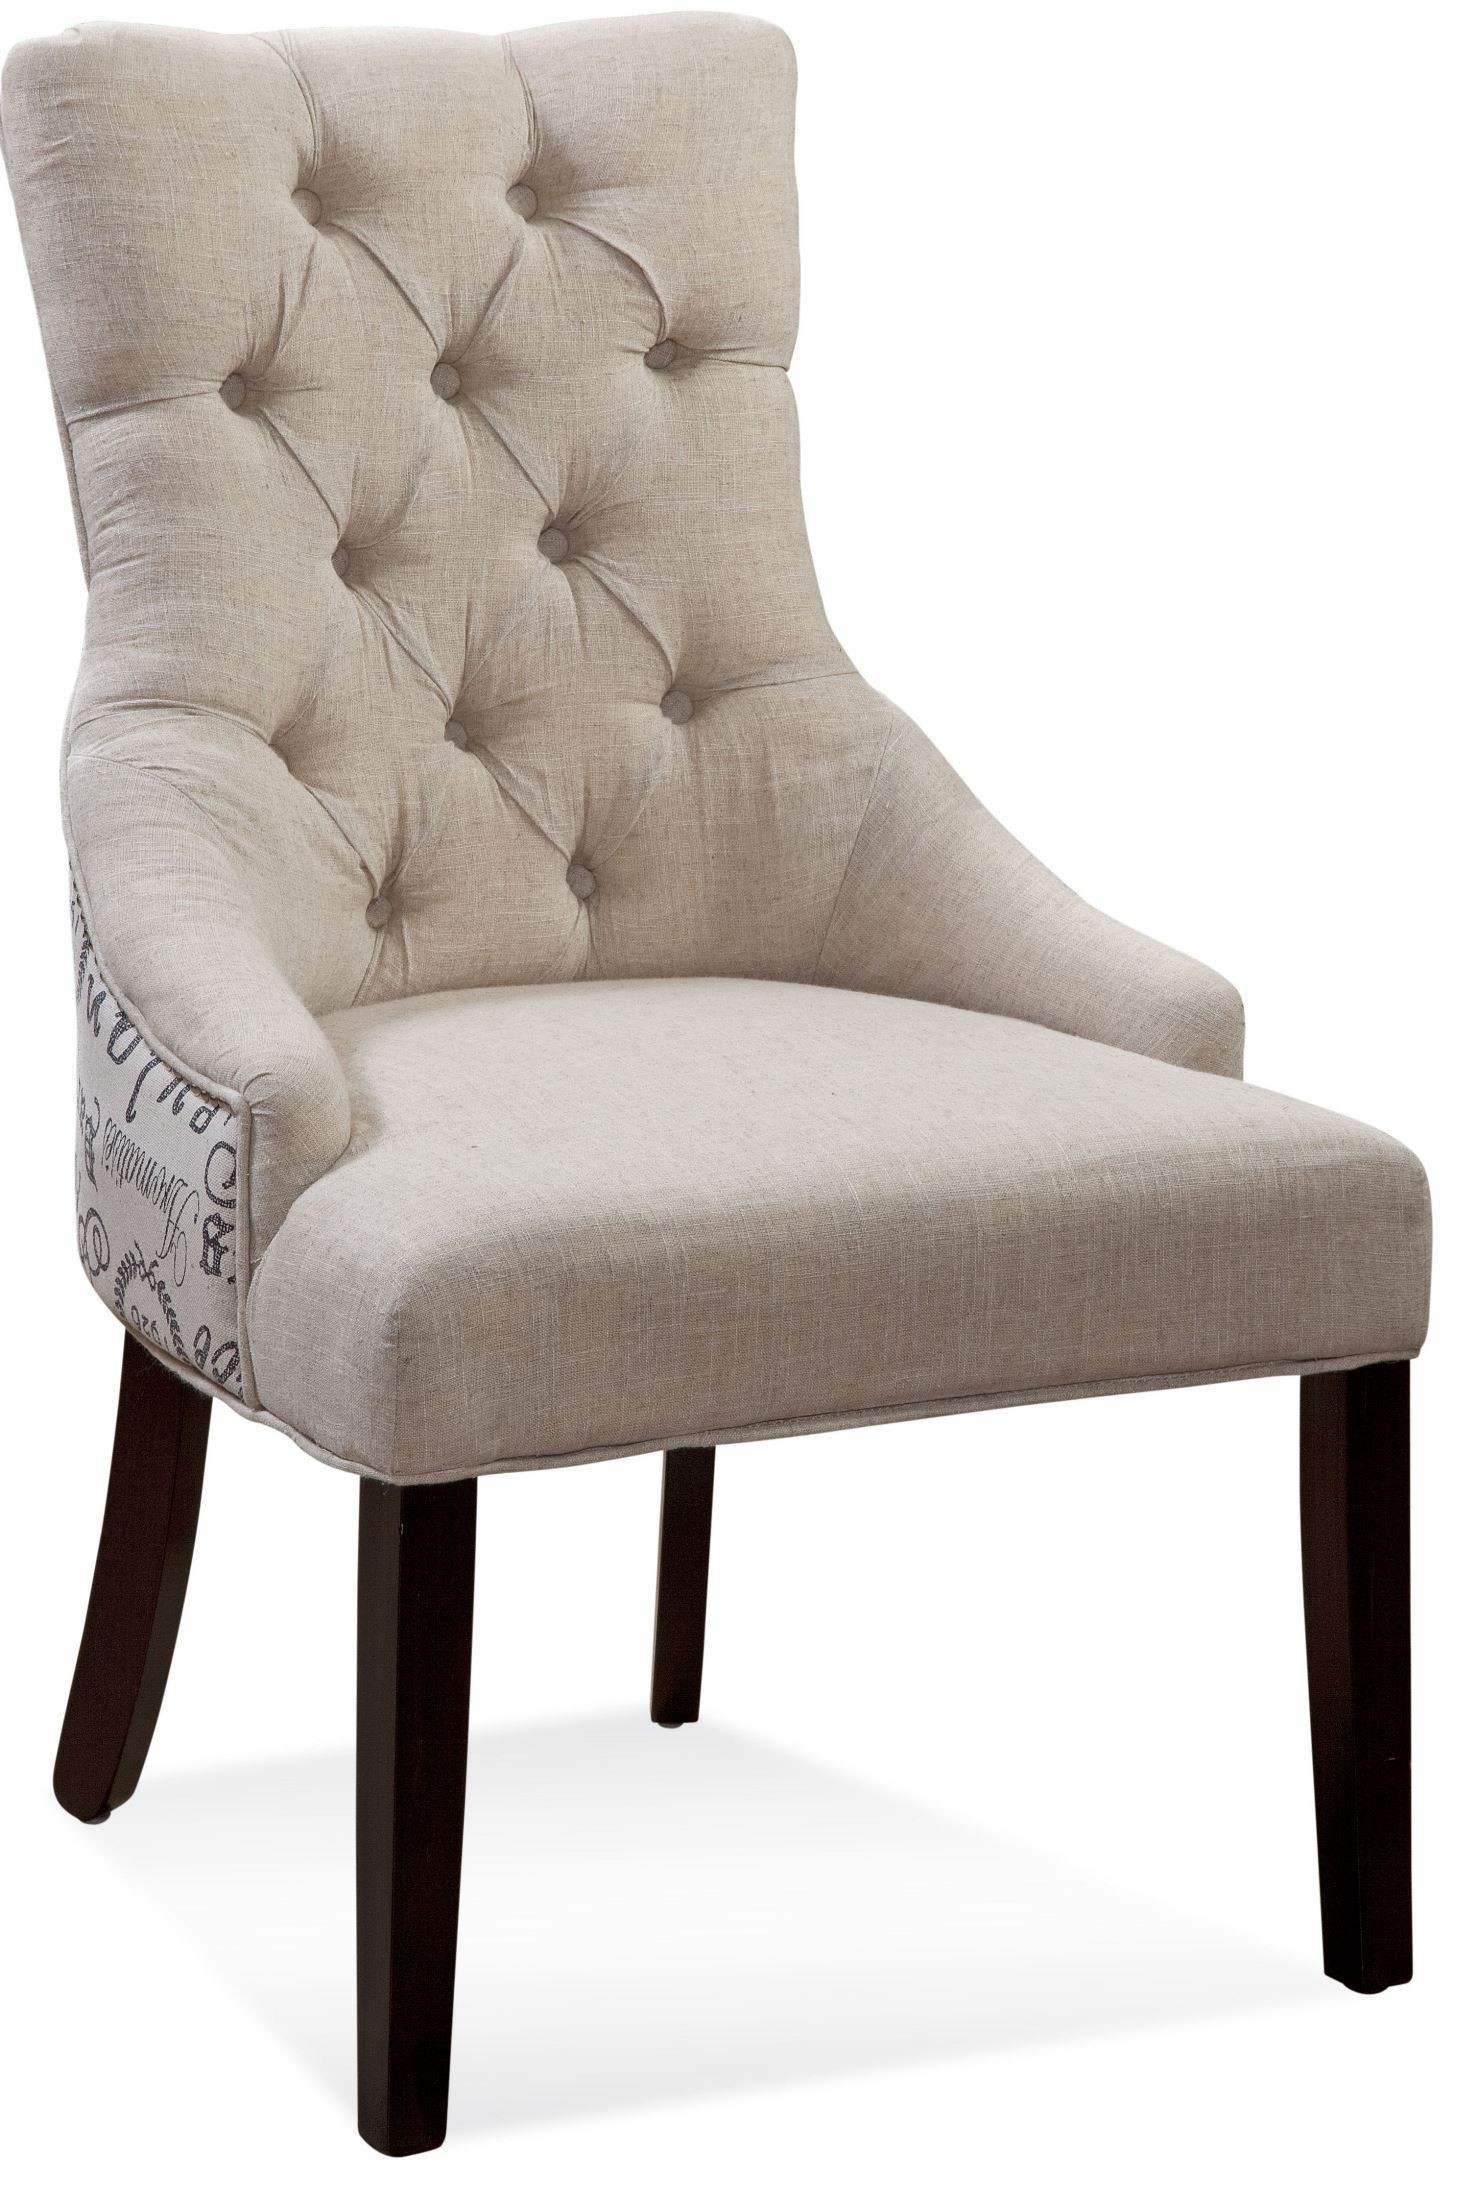 tufted nailhead chair rolling shower fortnum script fabric parson dpch15